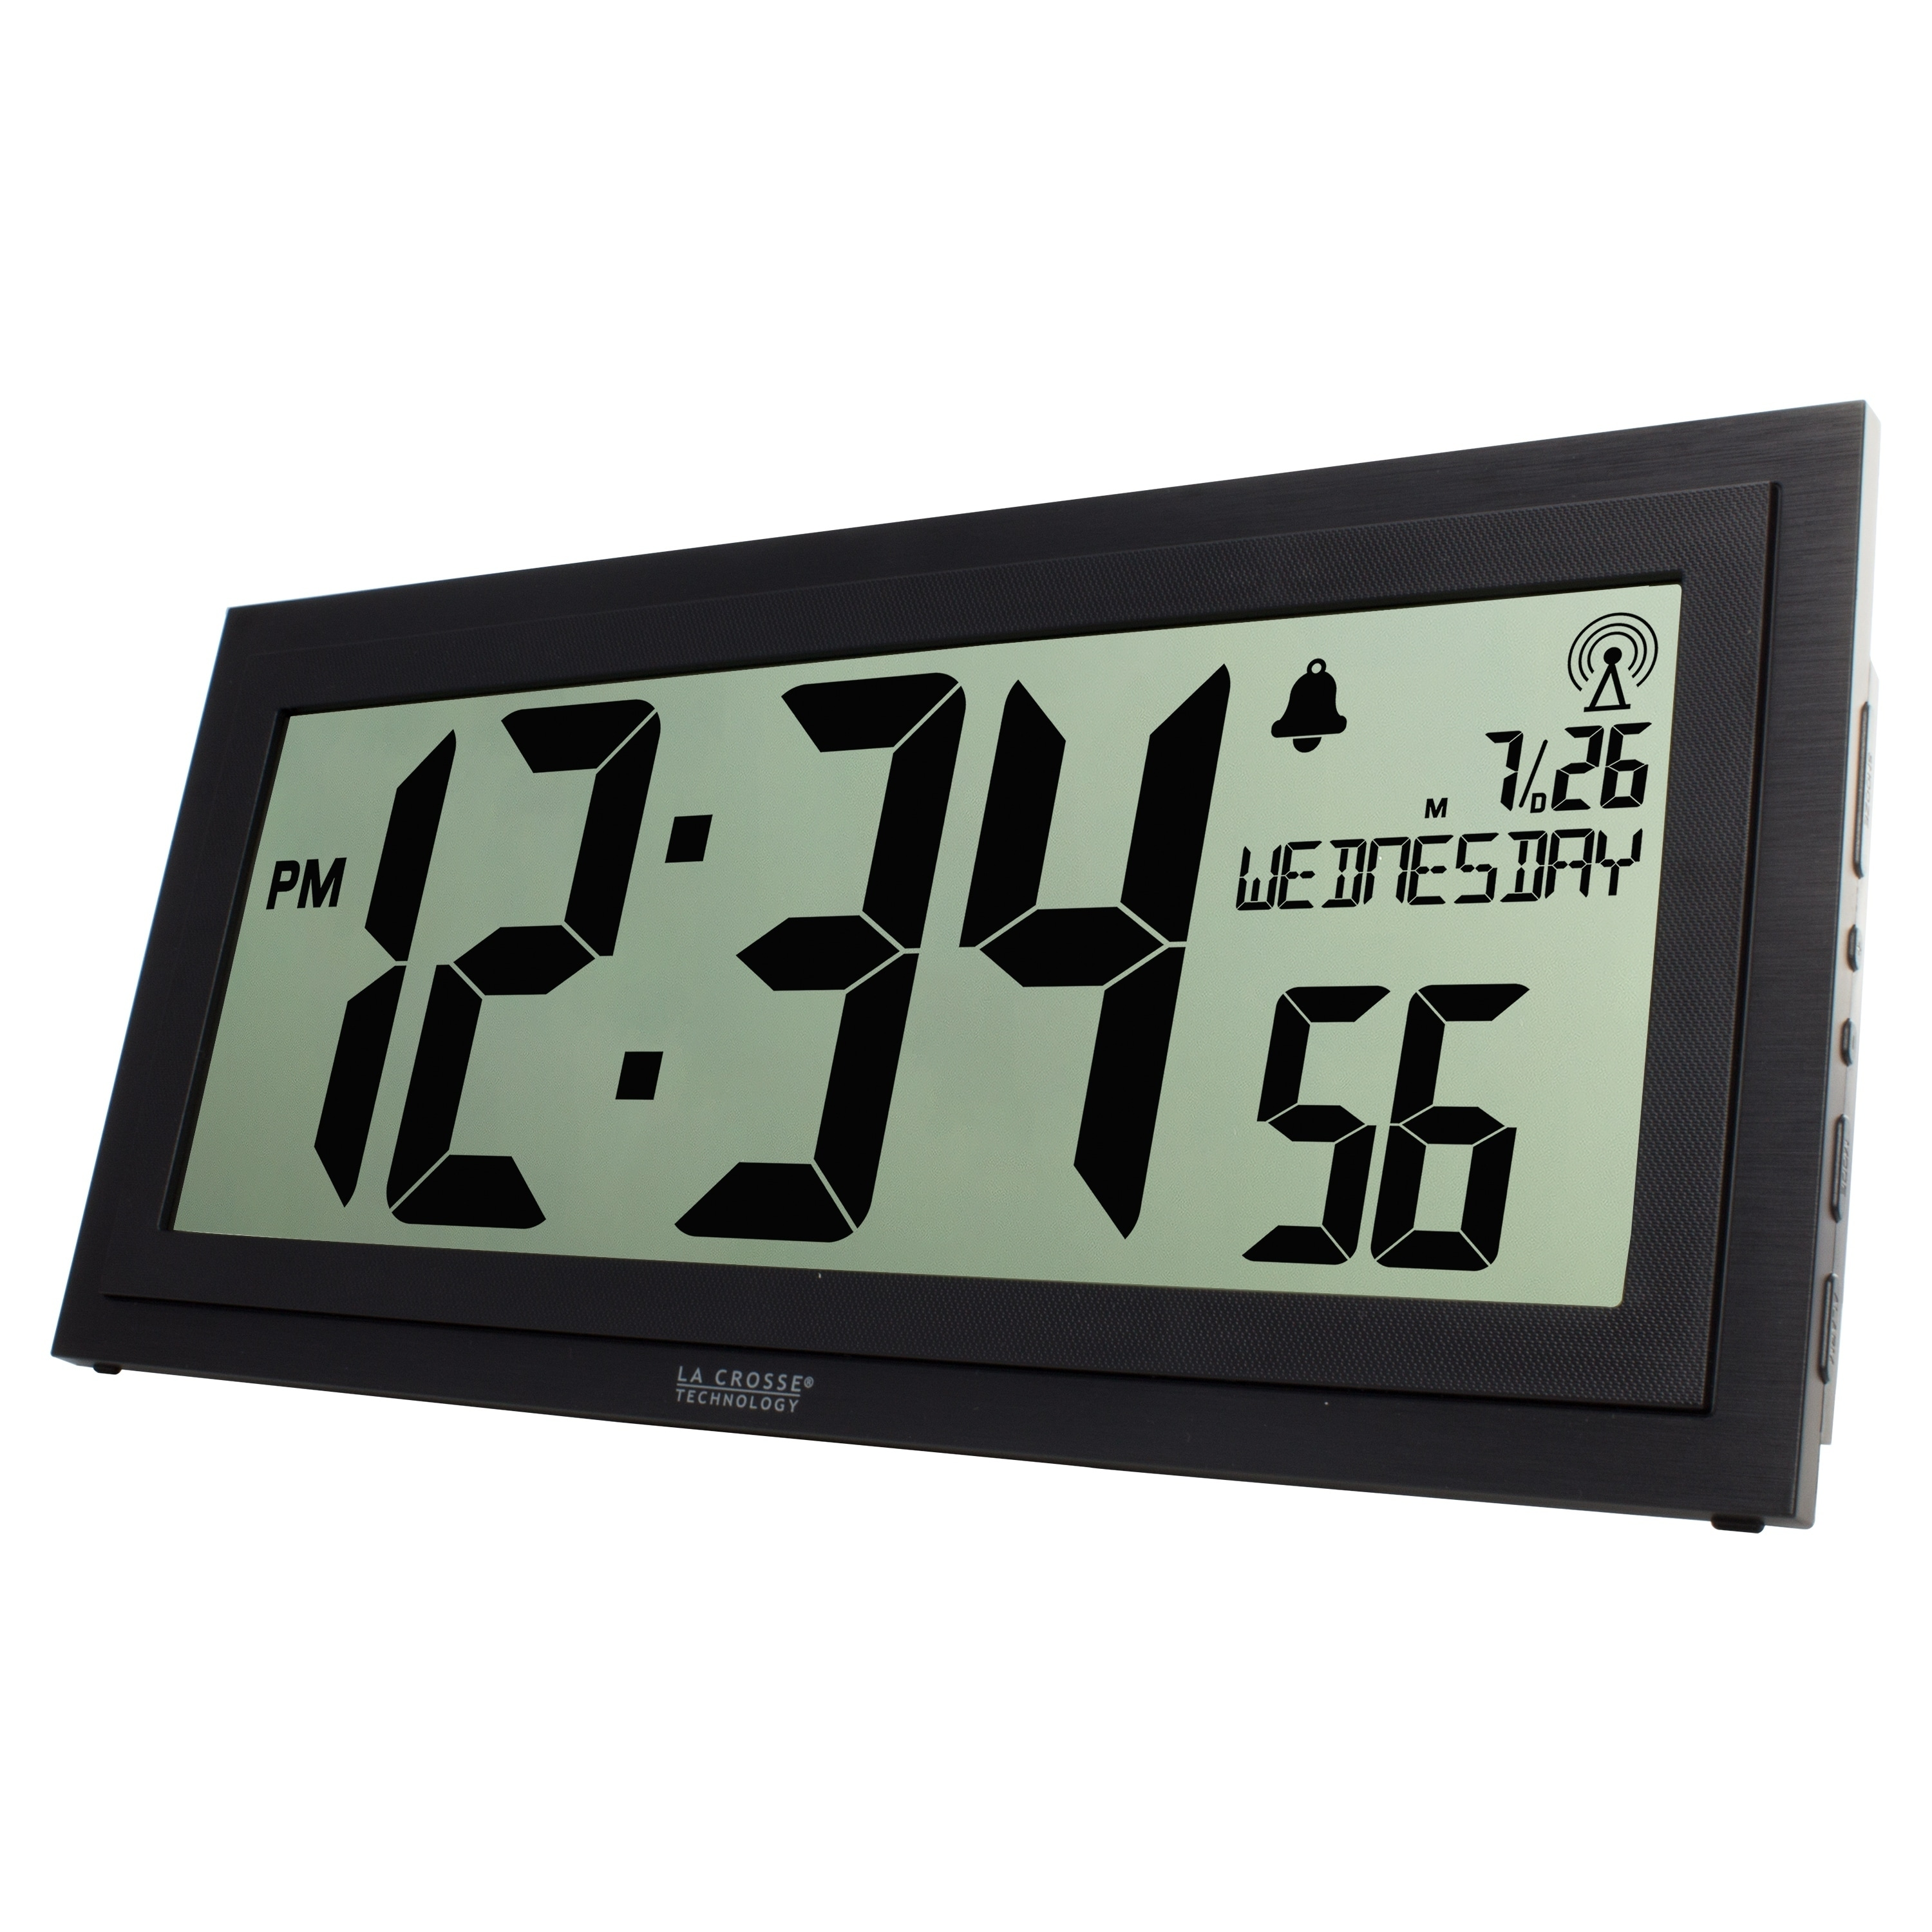 La Crosse Technology Bbb87276 15 Inch Textured Atomic Digital Wall Clock Free Shipping Today 20715955